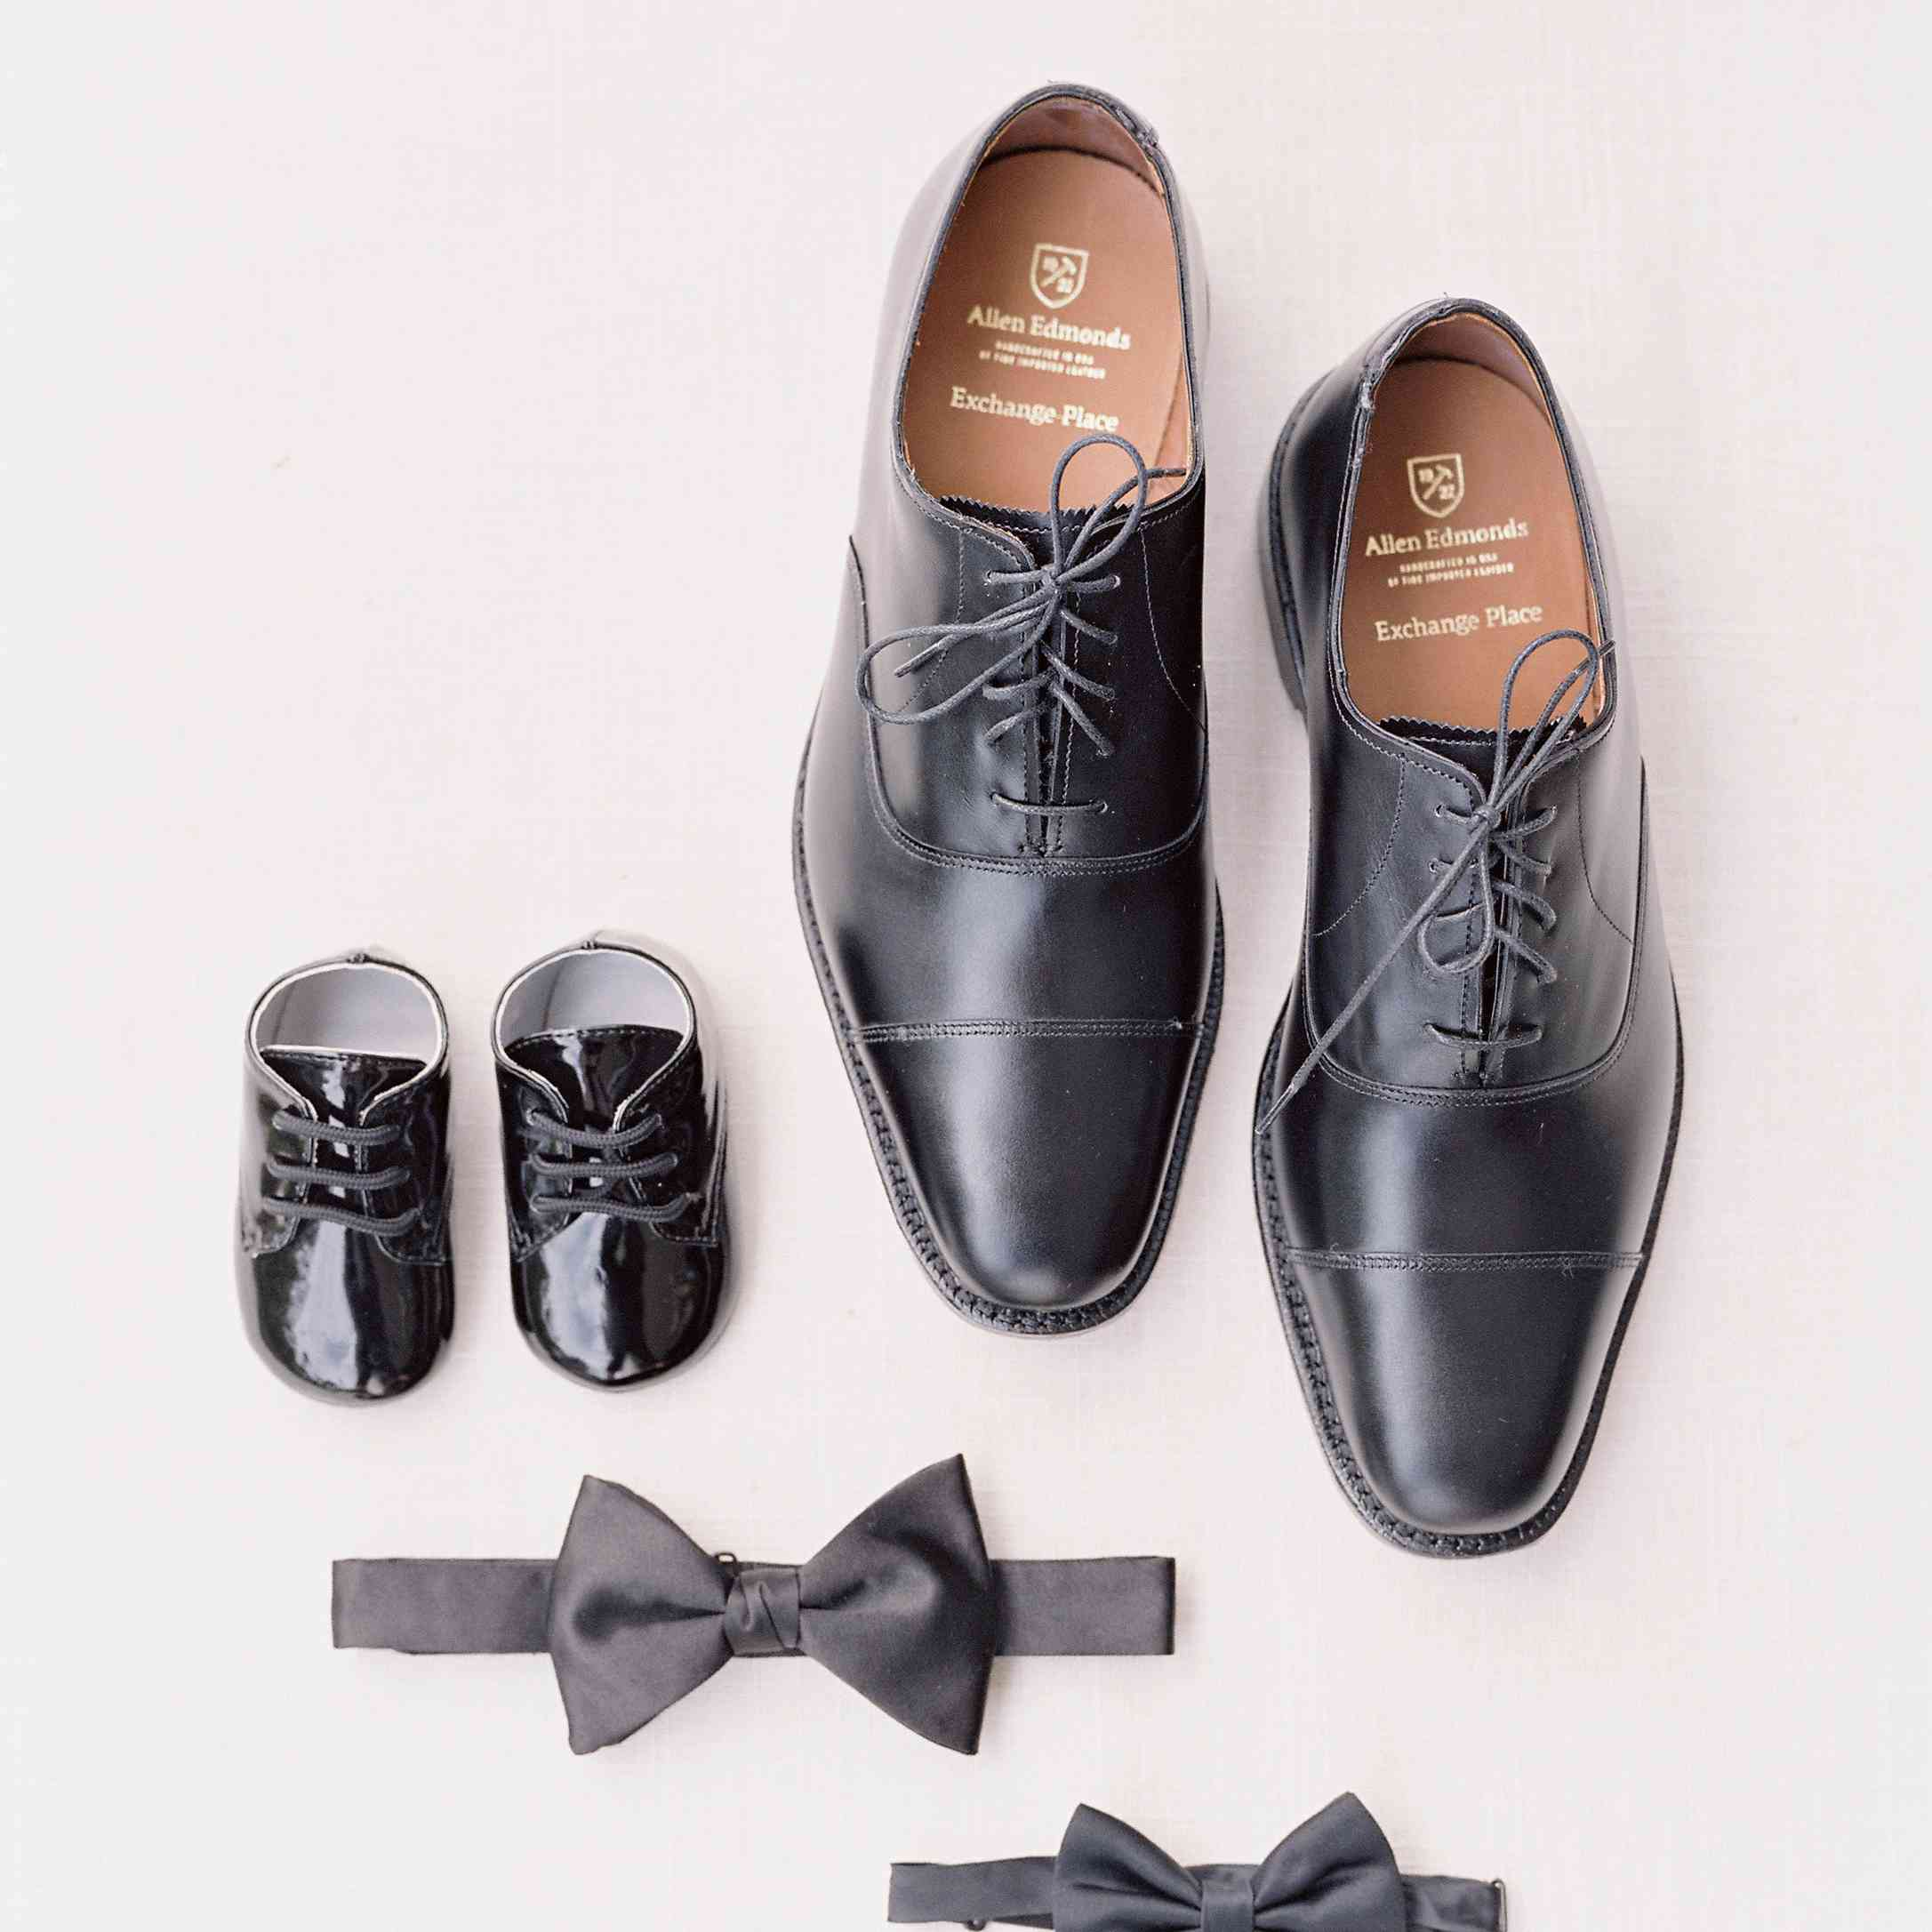 <p>Grooms shoes and bowtie</p><br><br>